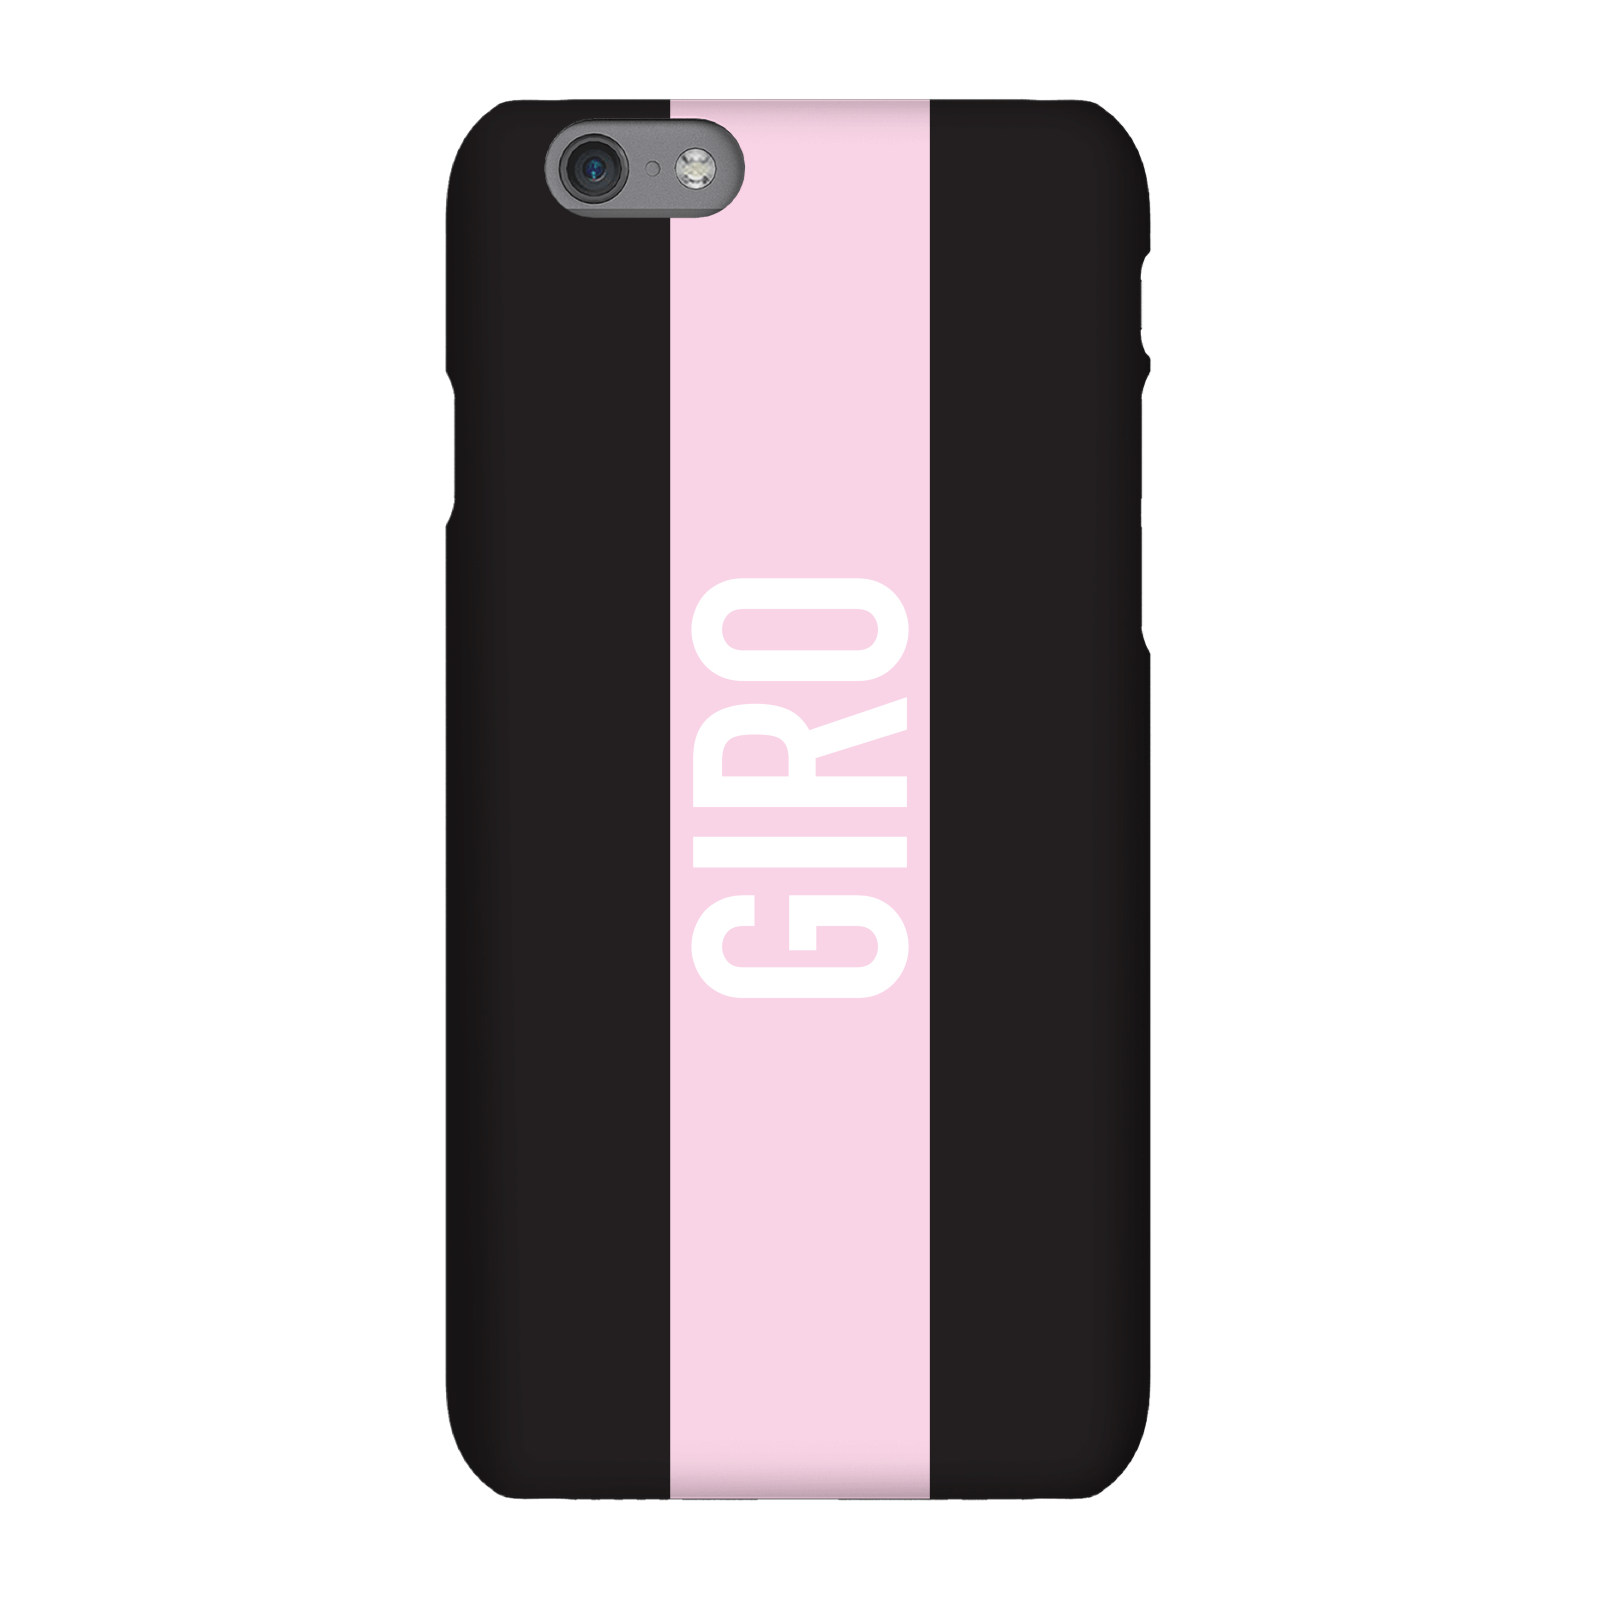 Giro Phone Case for iPhone and Android - iPhone 6S - Snap Hülle Matt